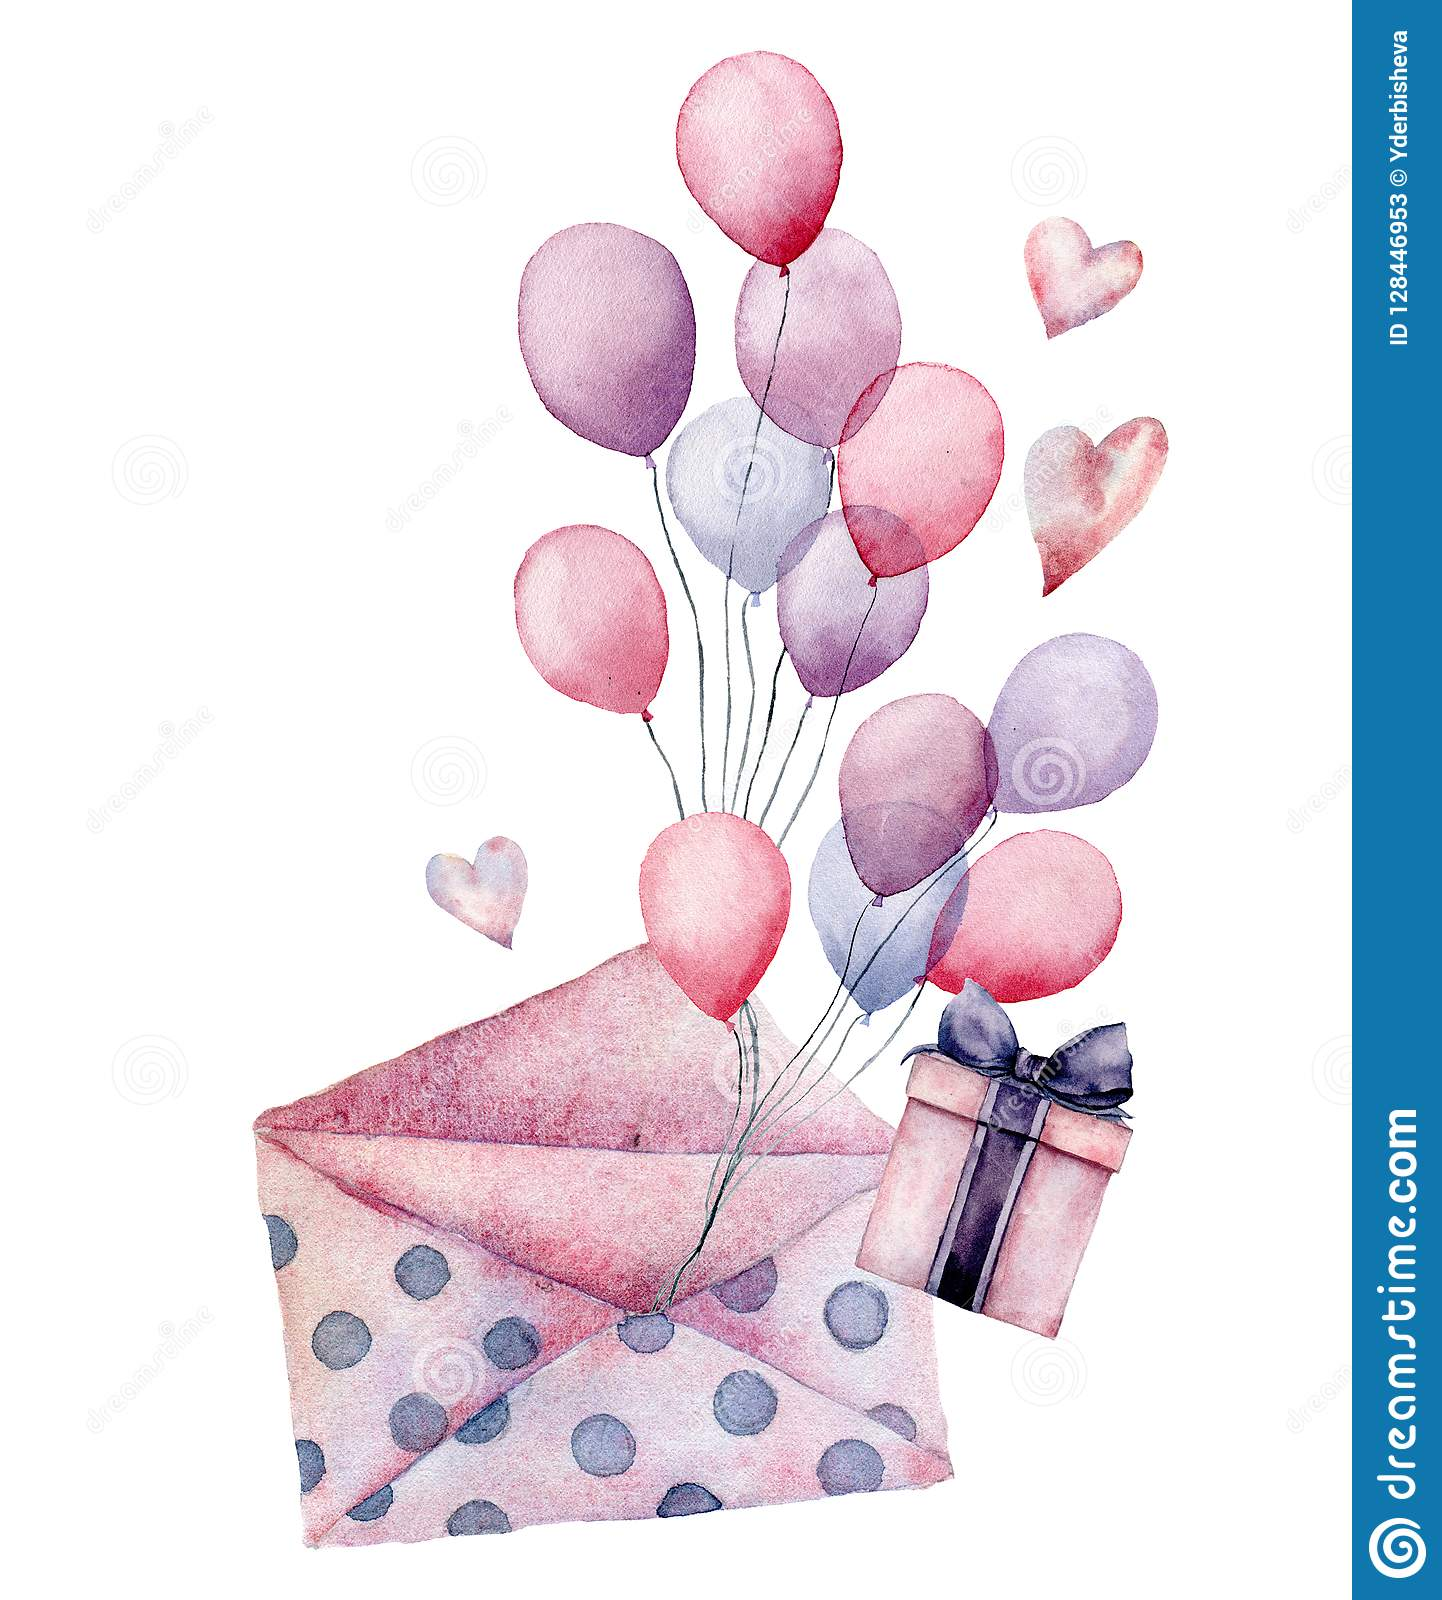 Watercolor Birthday Decor Card With Envelope Airballon Hand Painted Gift Boxes Air Balloons Isolated